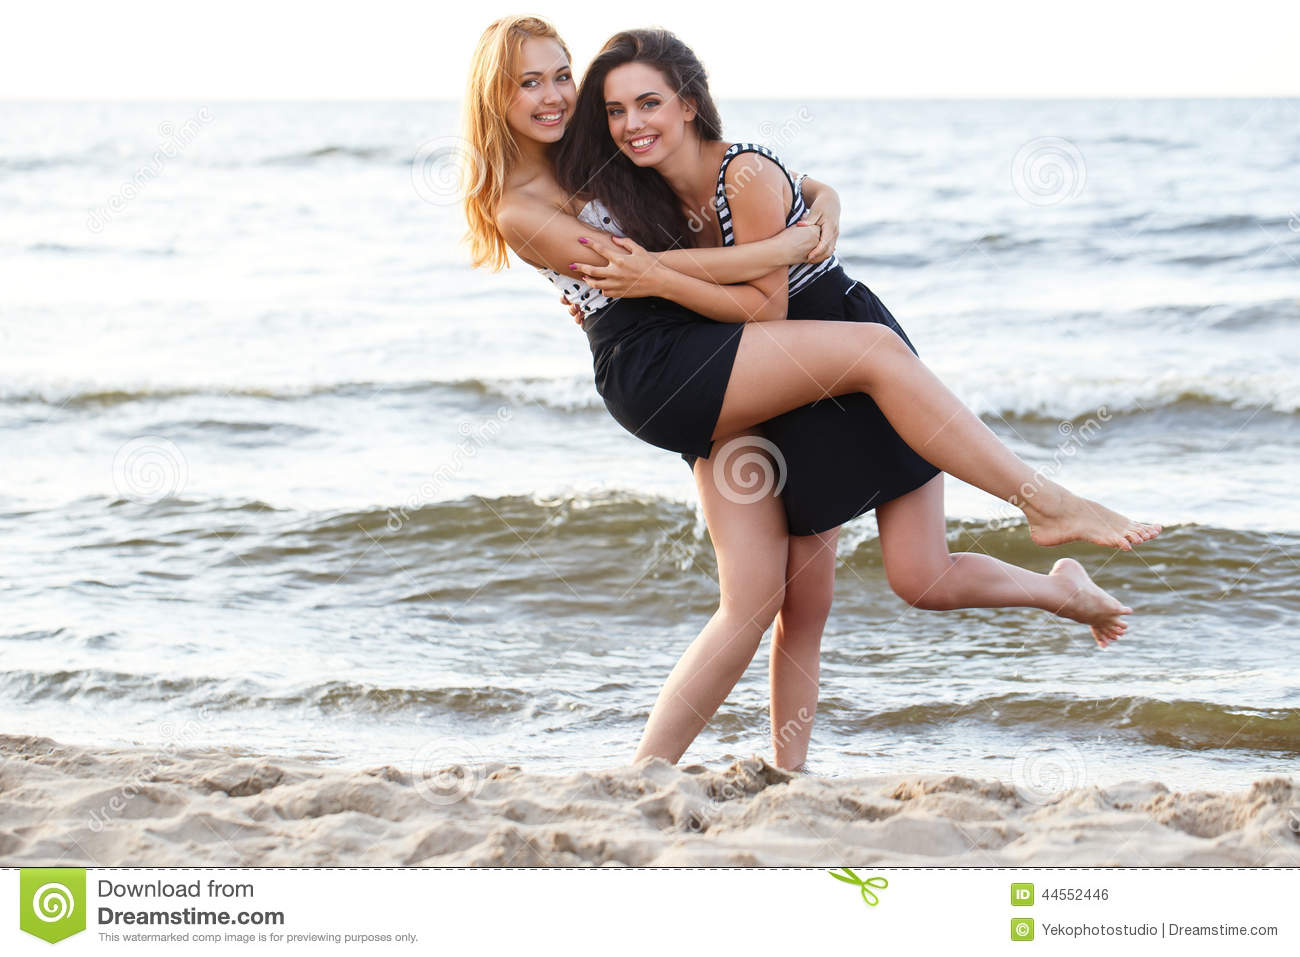 rio grande lesbian personals If you are looking for cam sex, adult dating, date sex or sex tonight then you've come to the right page for free rio grande, puerto rico sex dating.